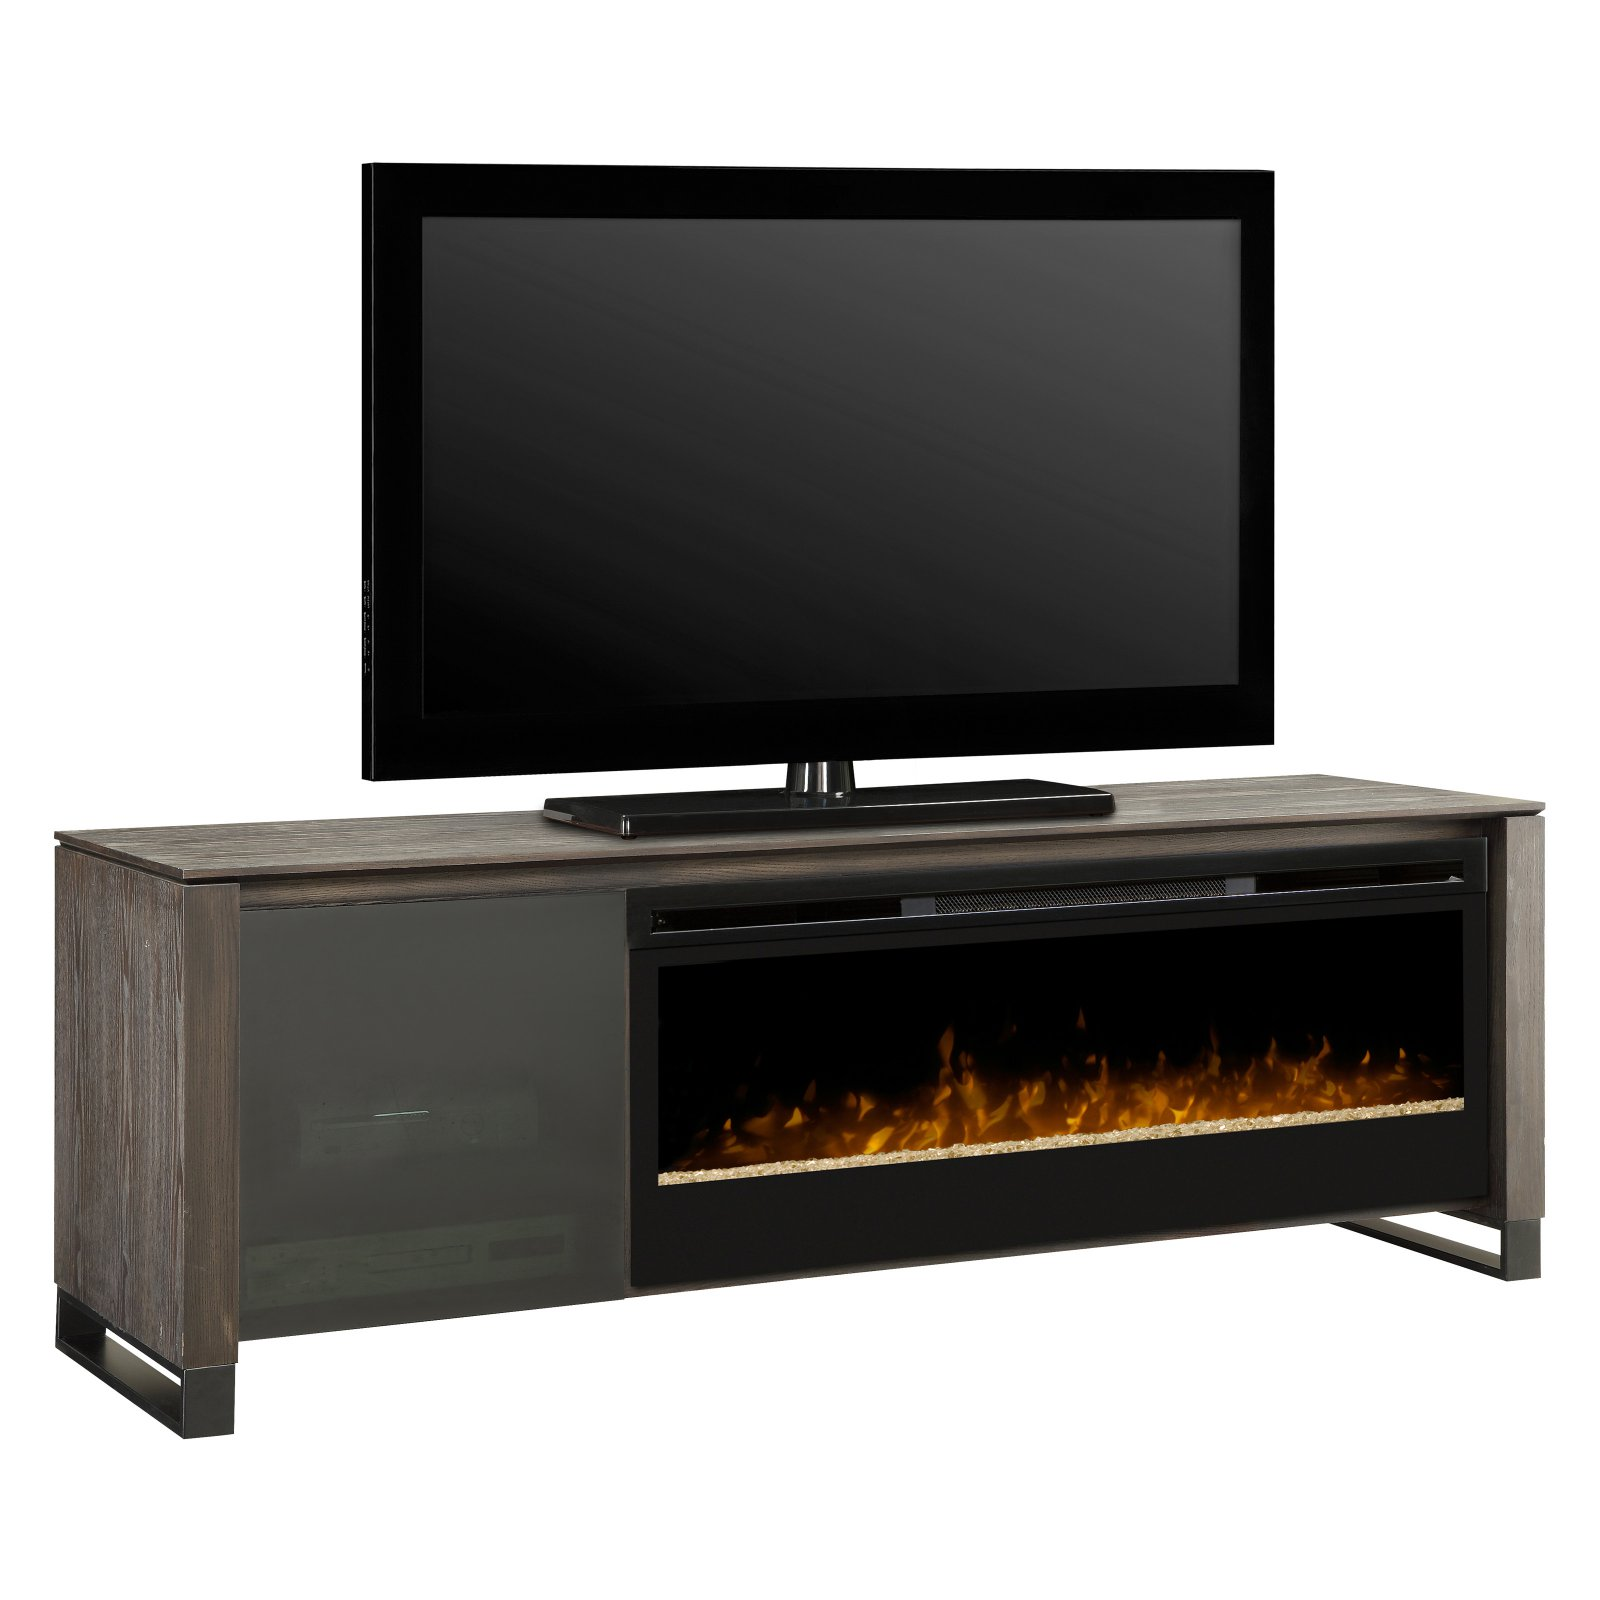 Dimplex Howden Media Console Electric Fireplace, Black